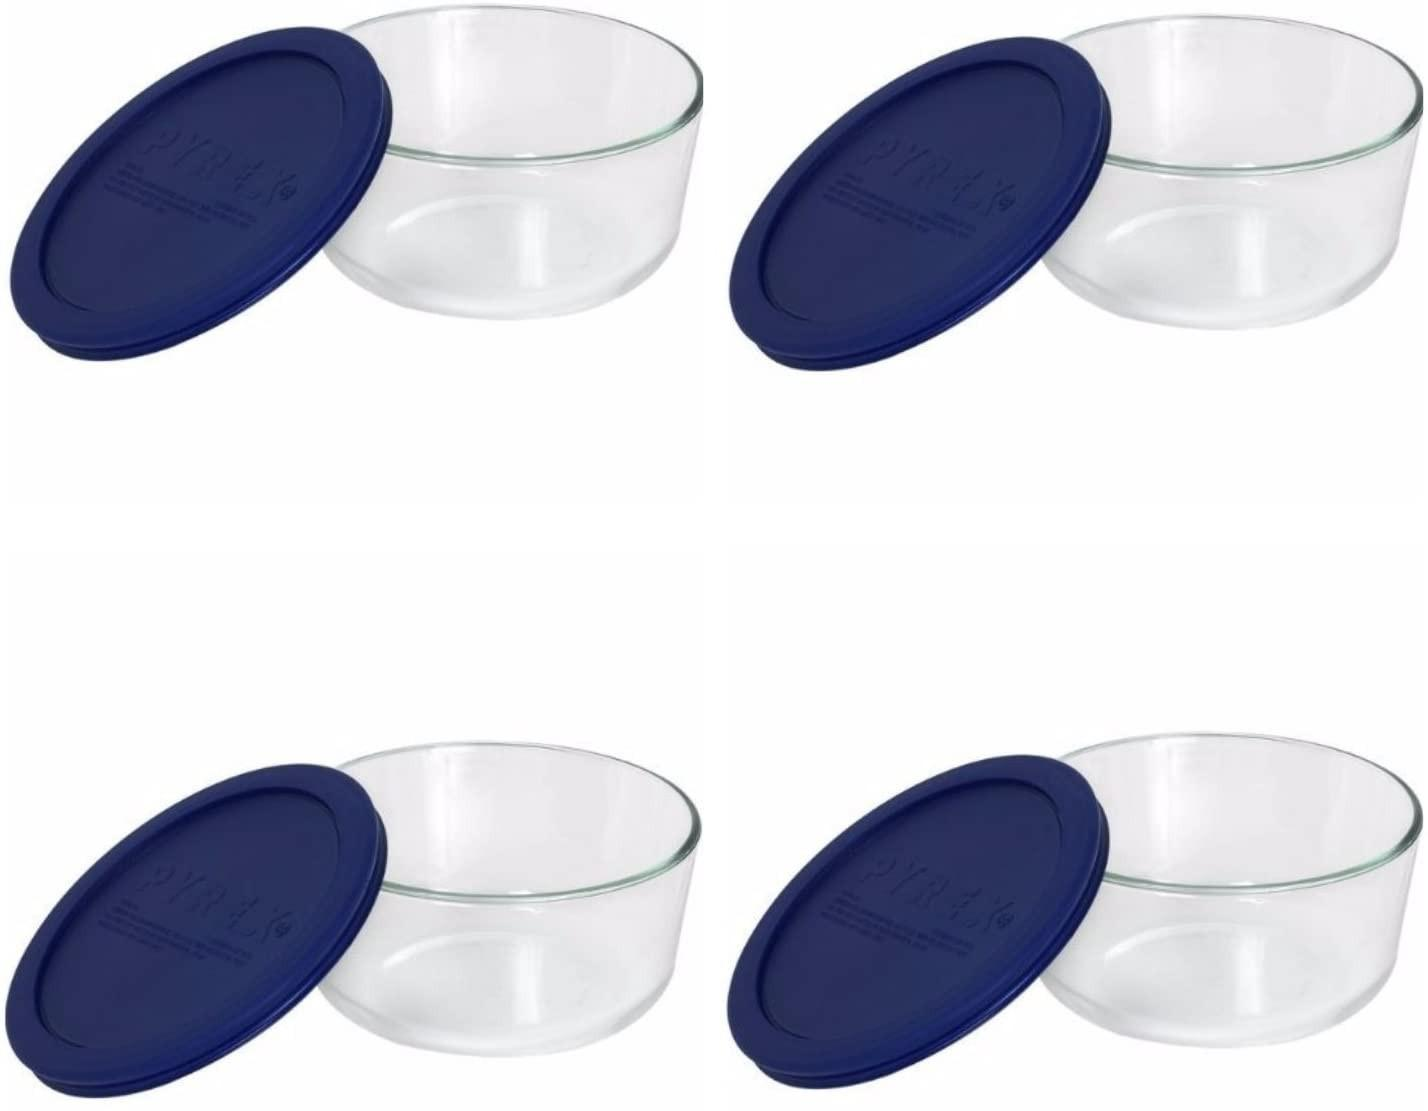 blue 7-cup Pyrex containers and lids